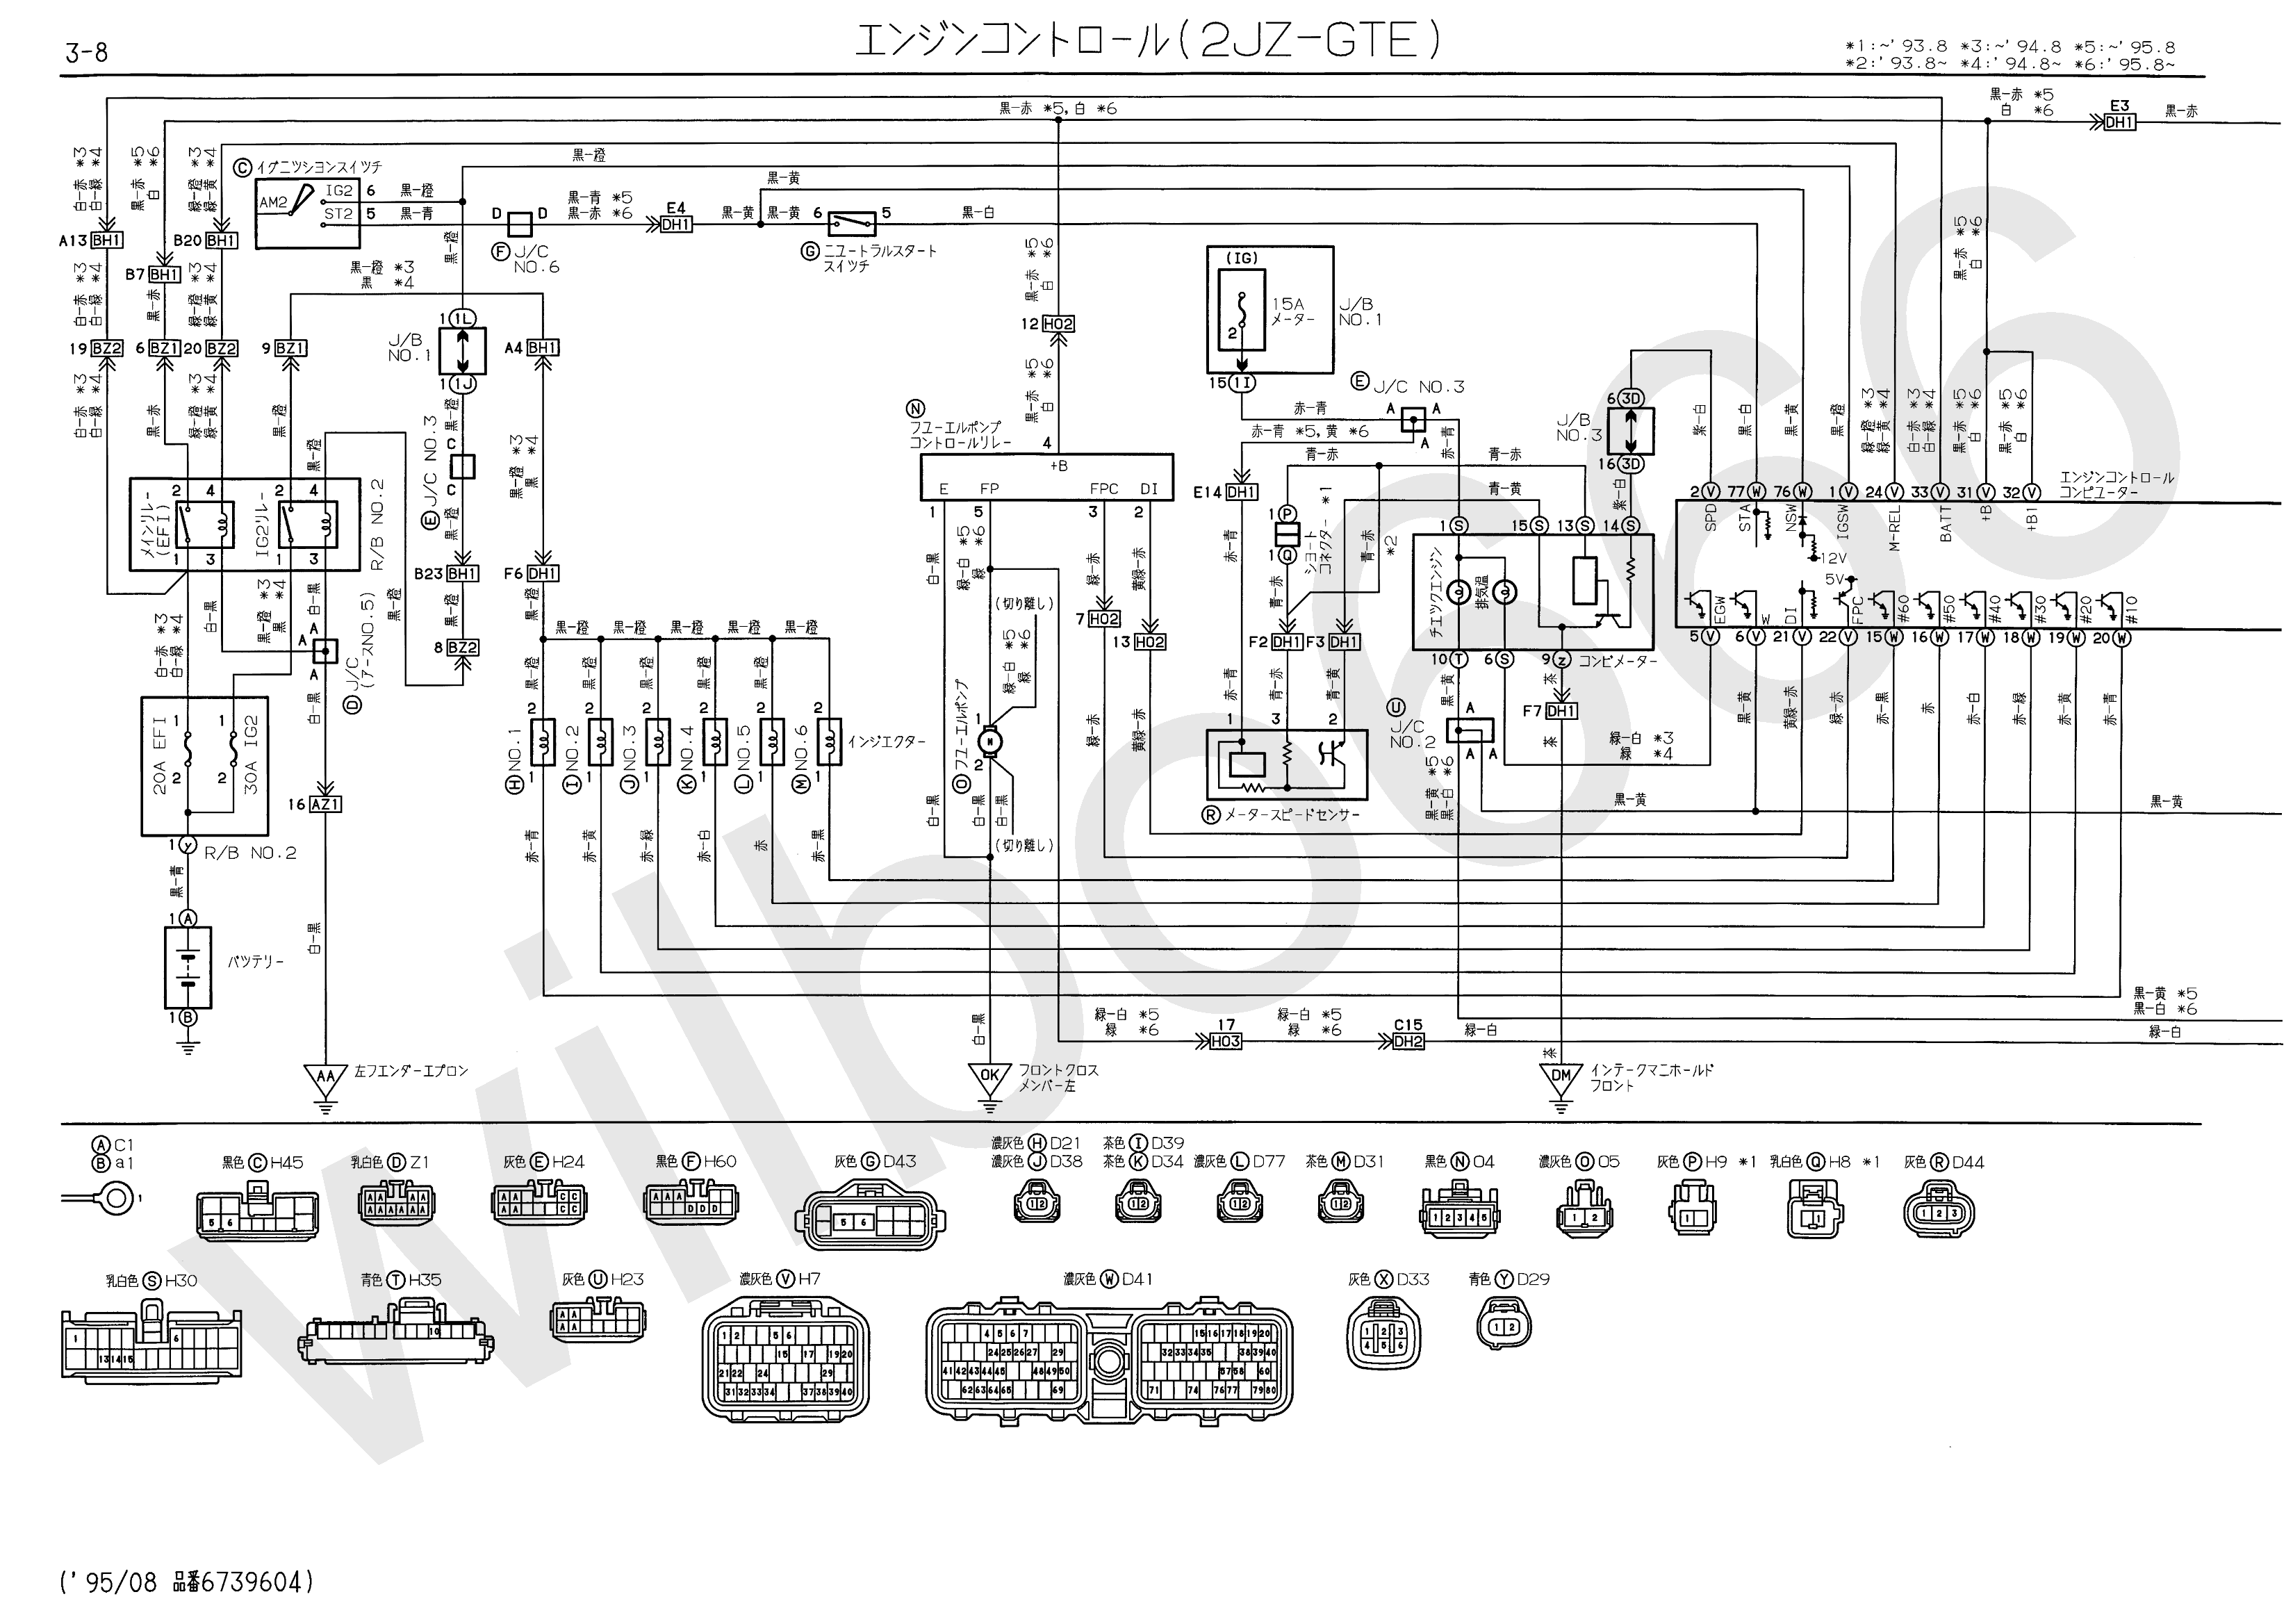 Wilbo666 2jzgte Jzs147 Aristo Engine Wiring. Jzs147 Toyota Aristo 2jzgte Wiring Diagrams. Ford. Ford 2 9 Efi Wiring Diagram At Scoala.co